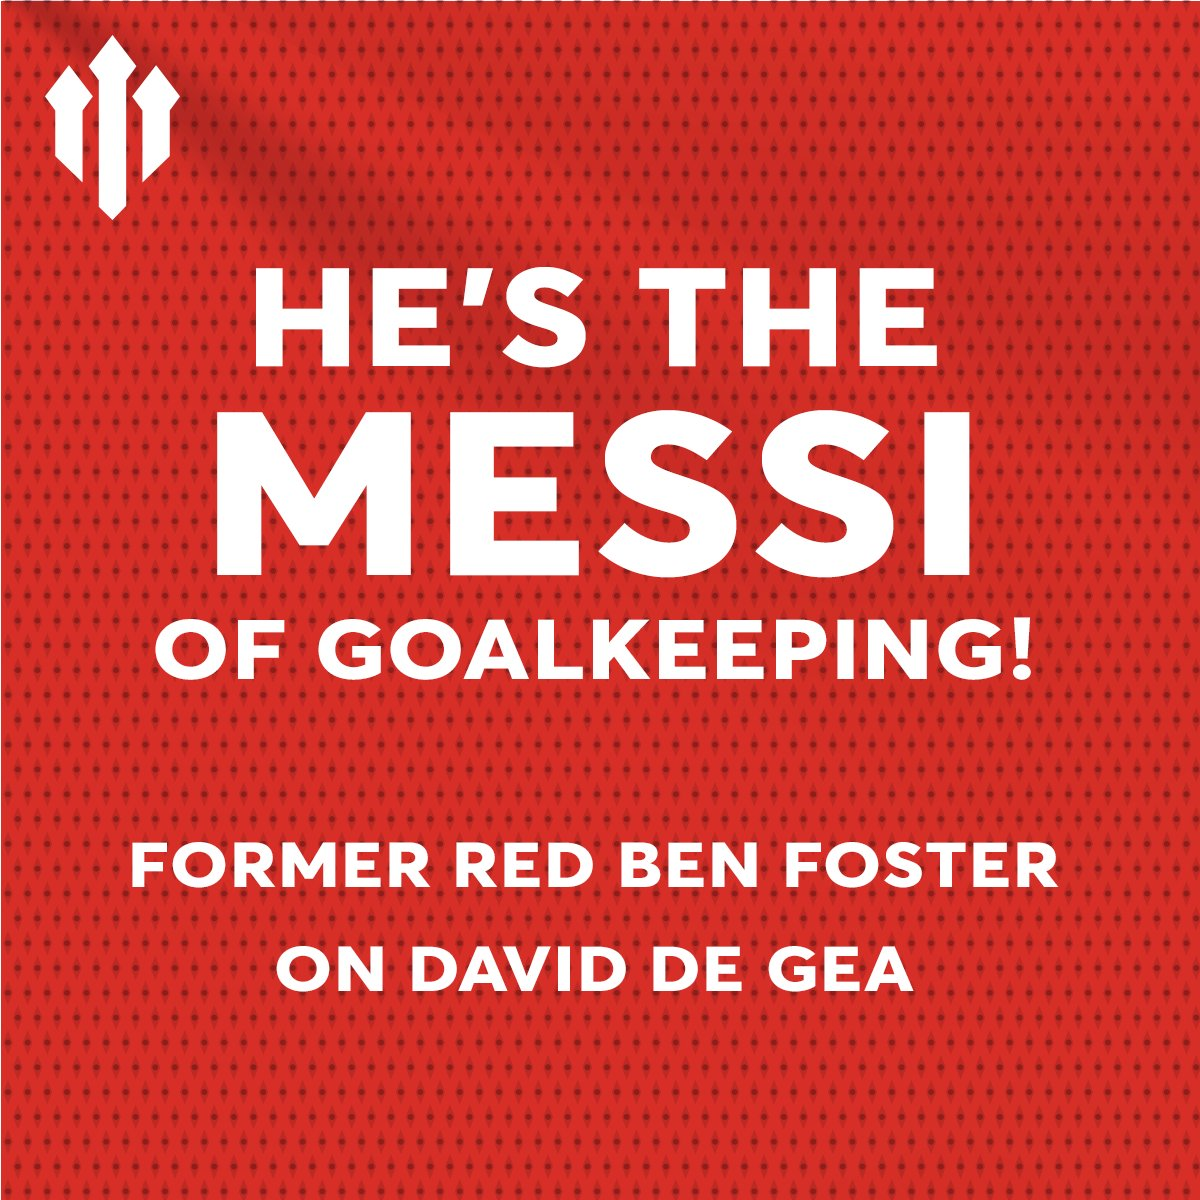 Ben Foster on Spanish Dave! 🙌#MUFC